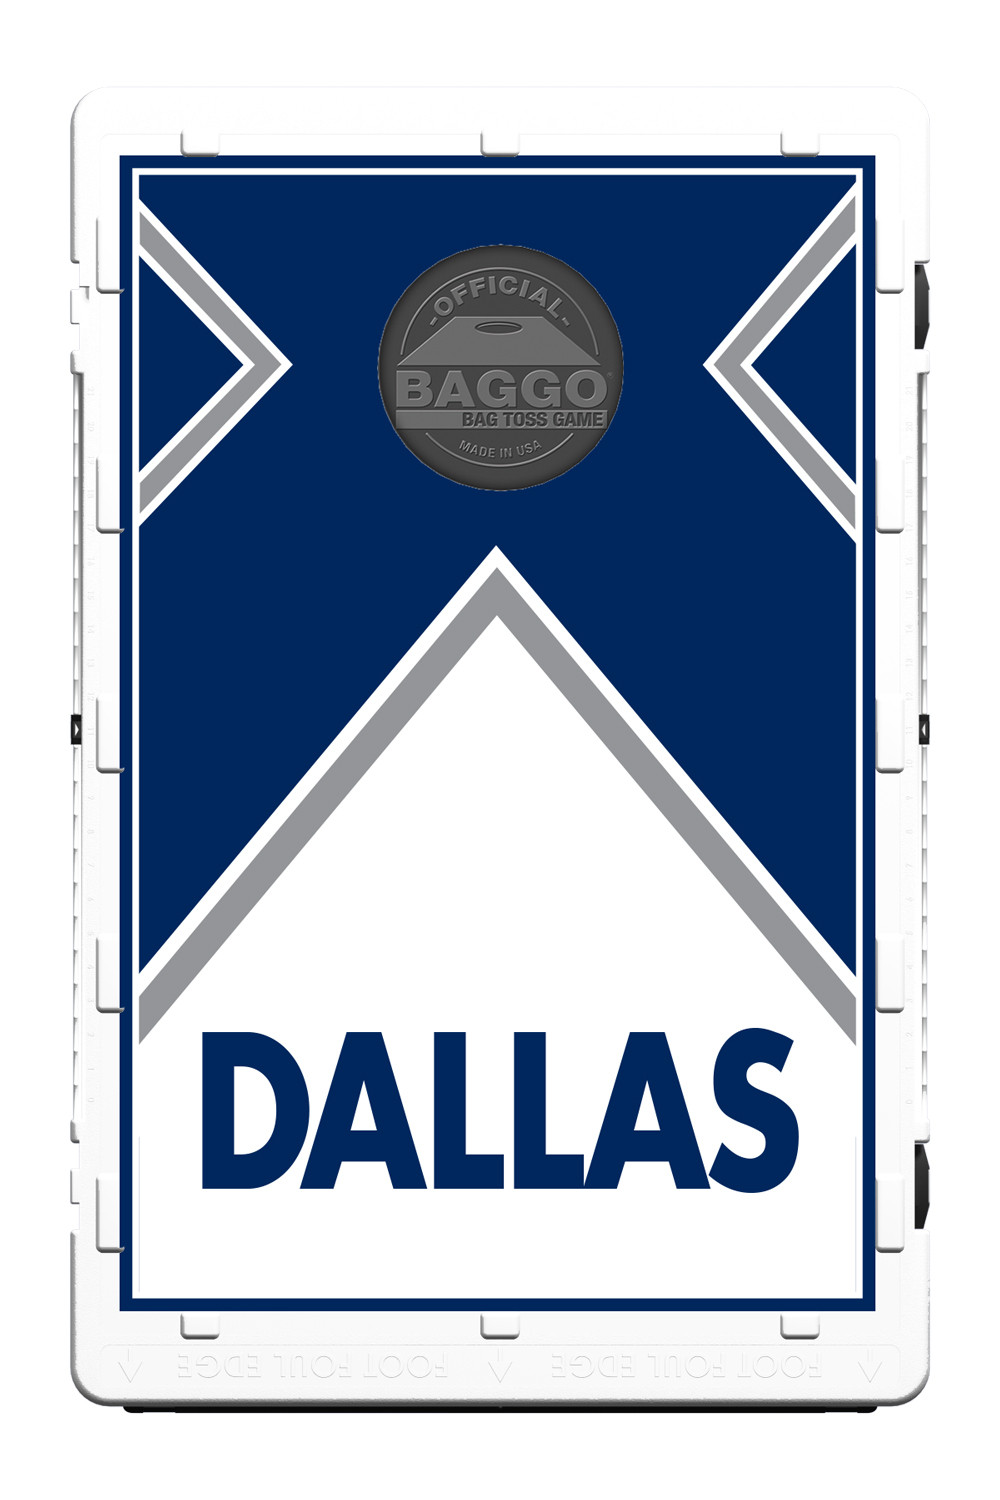 Dallas Navy Vintage Screens (only) by Baggo